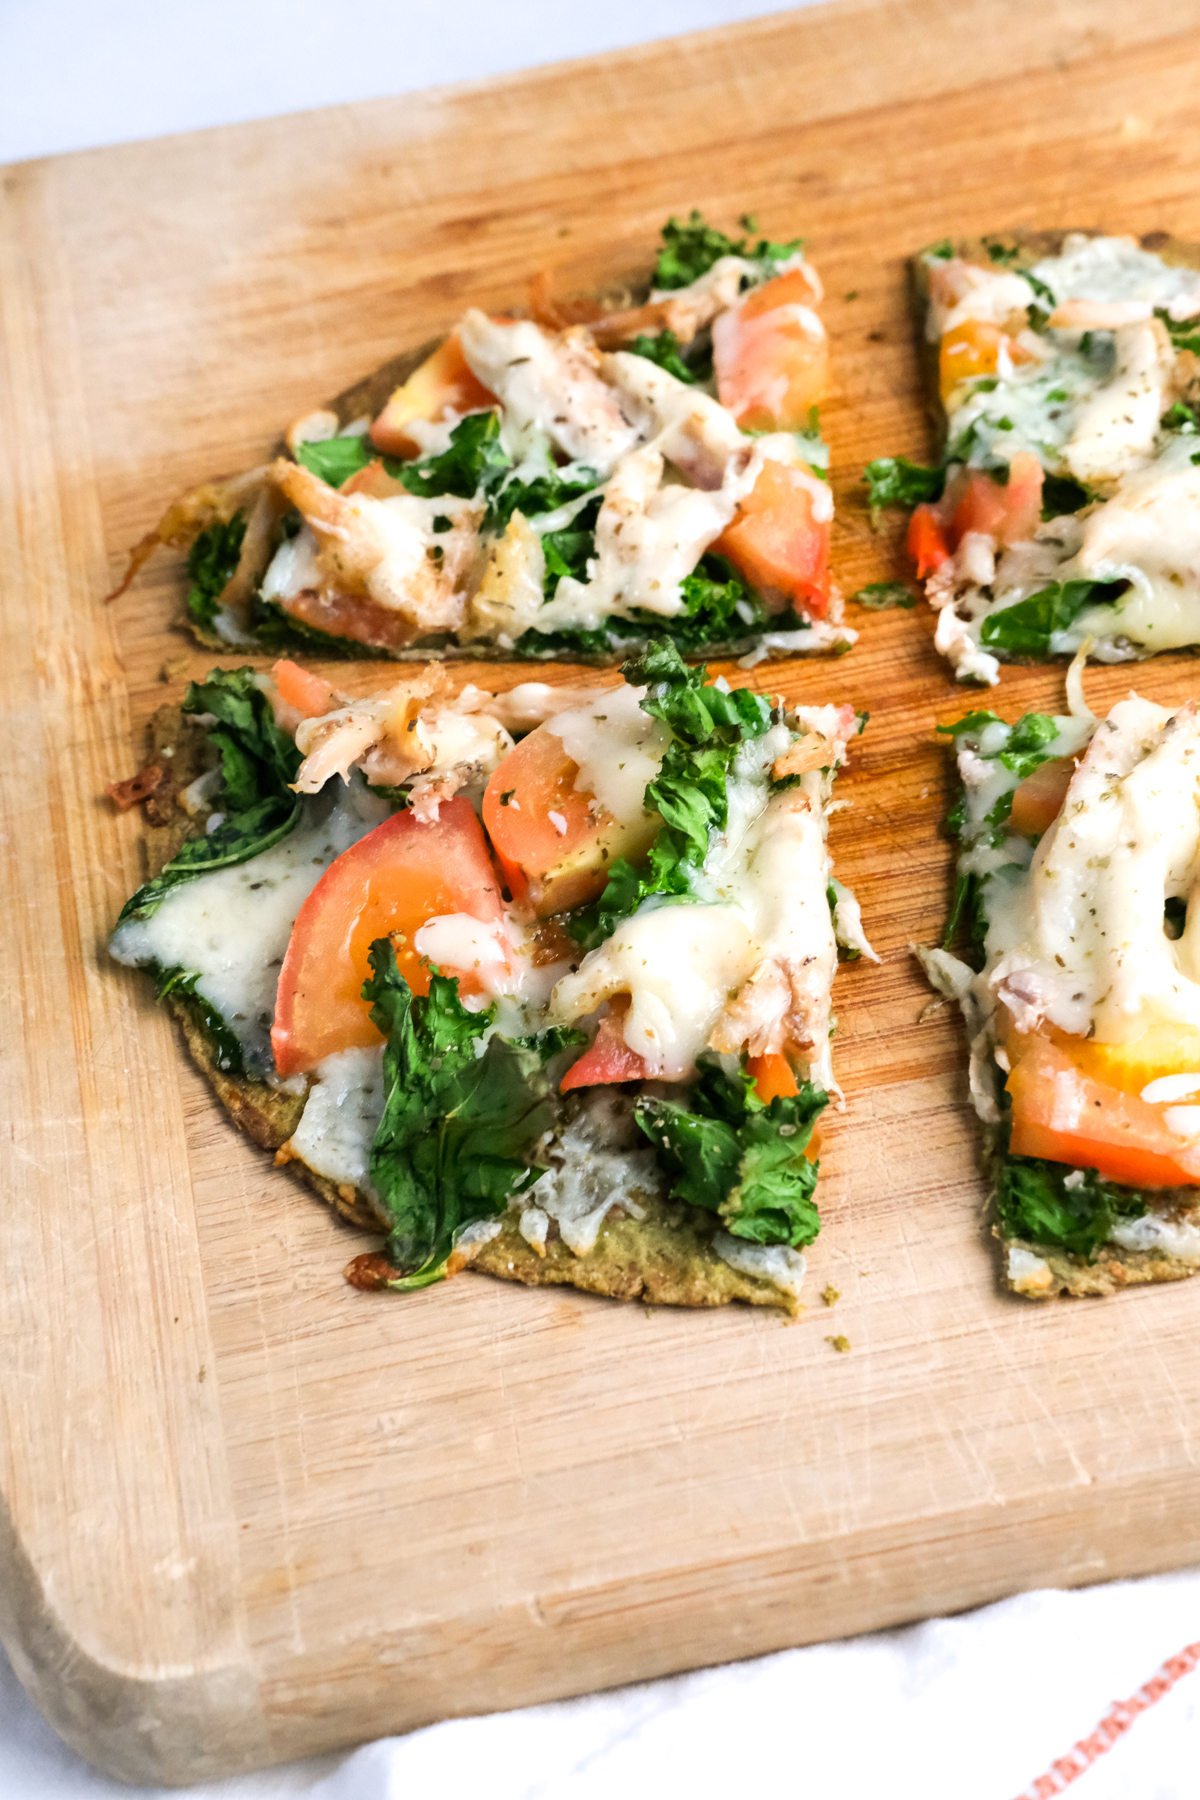 chicken flatbread on a wooden cutting board